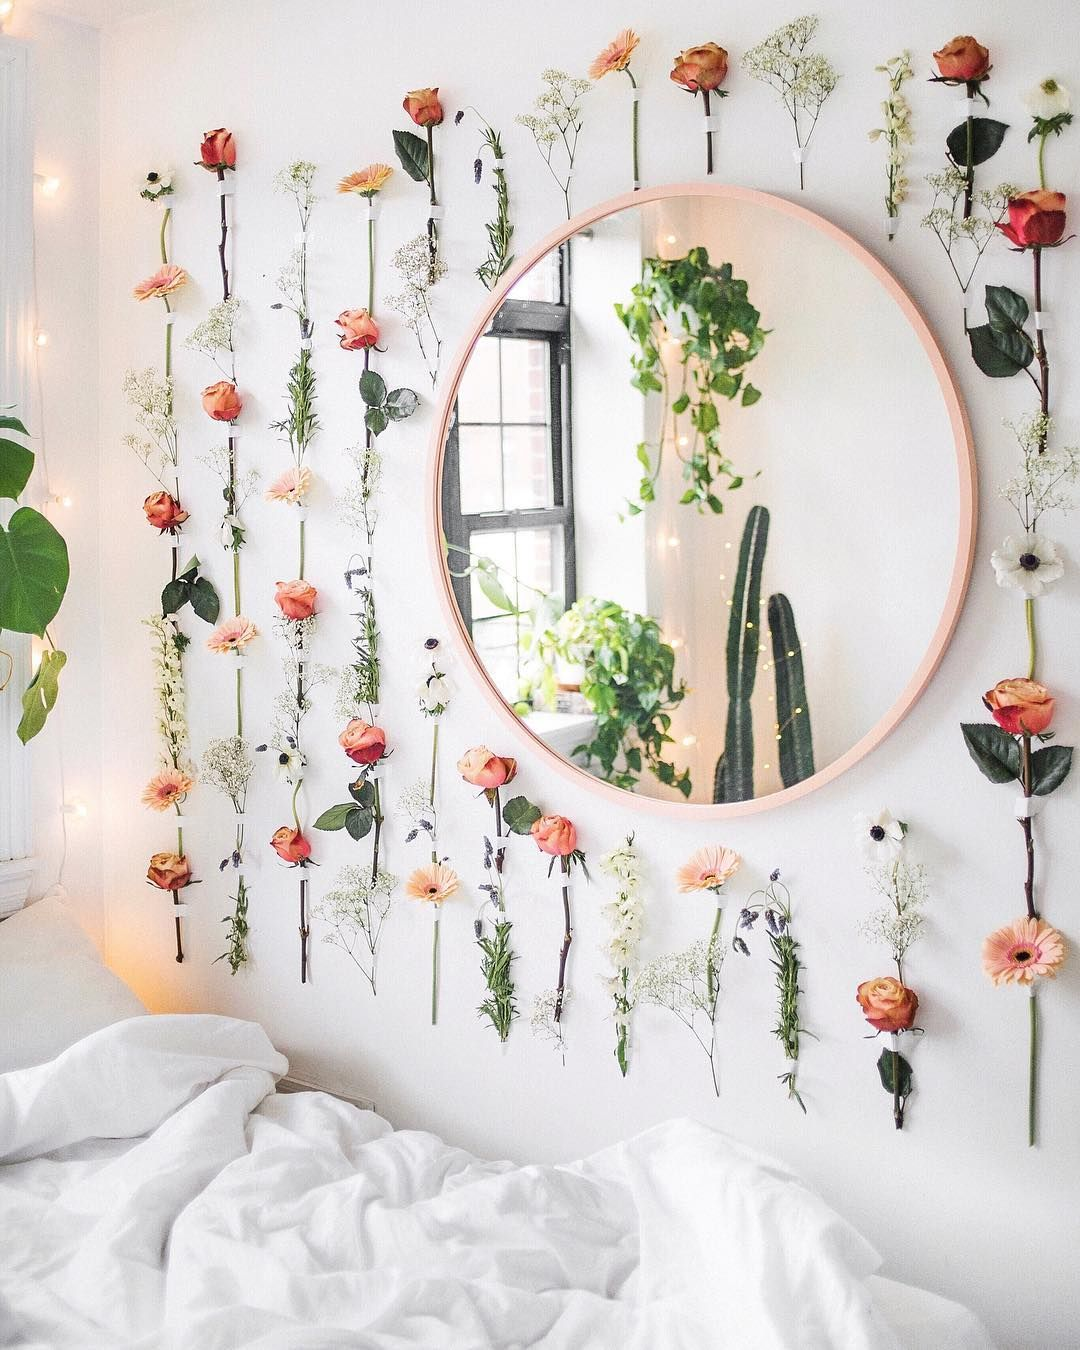 How To Decorate Dorm Room Walls Temporary Covering Ideas